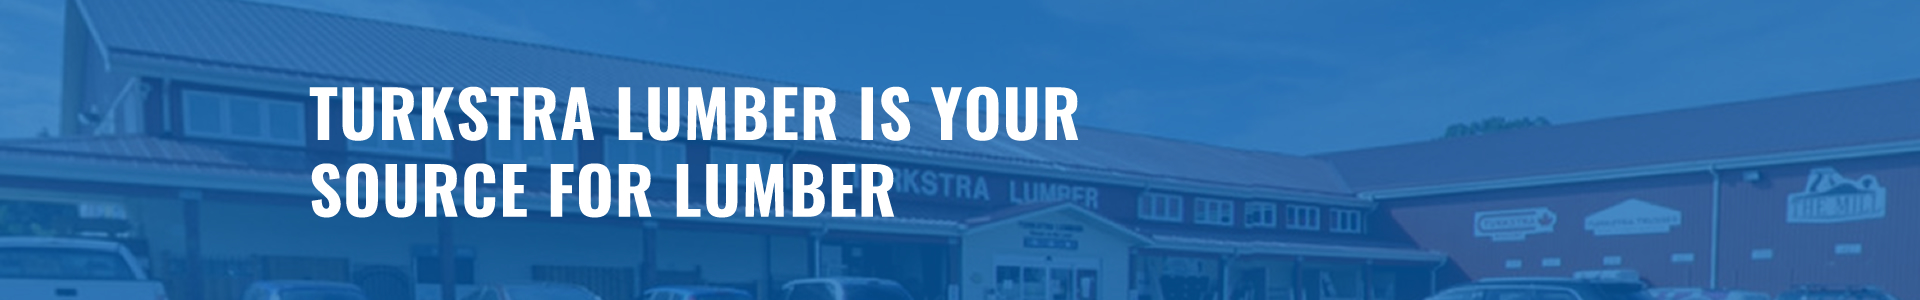 Turkstra Lumber is your source for lumber.